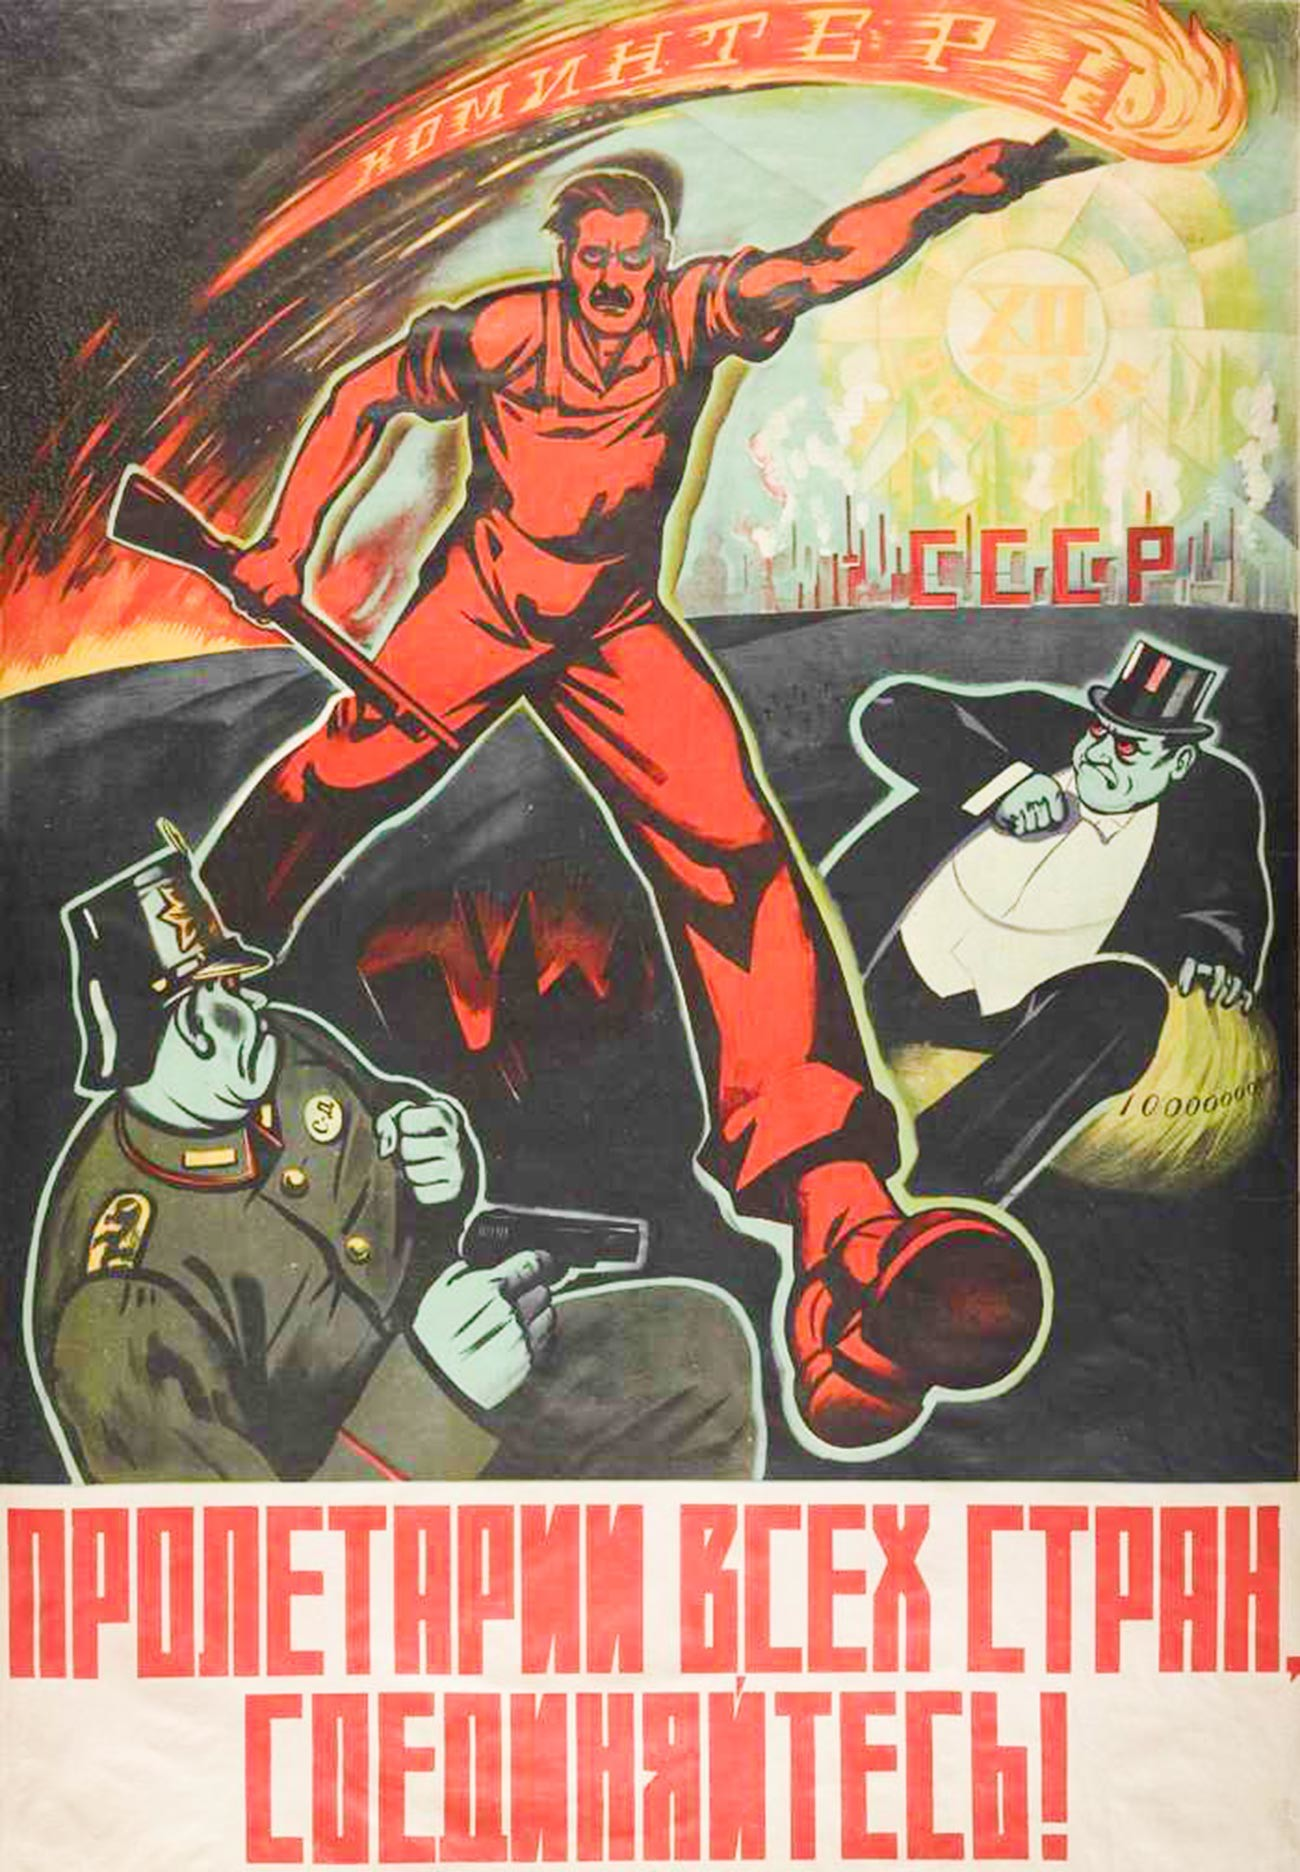 Komintern. Proletarians of the world, unite!